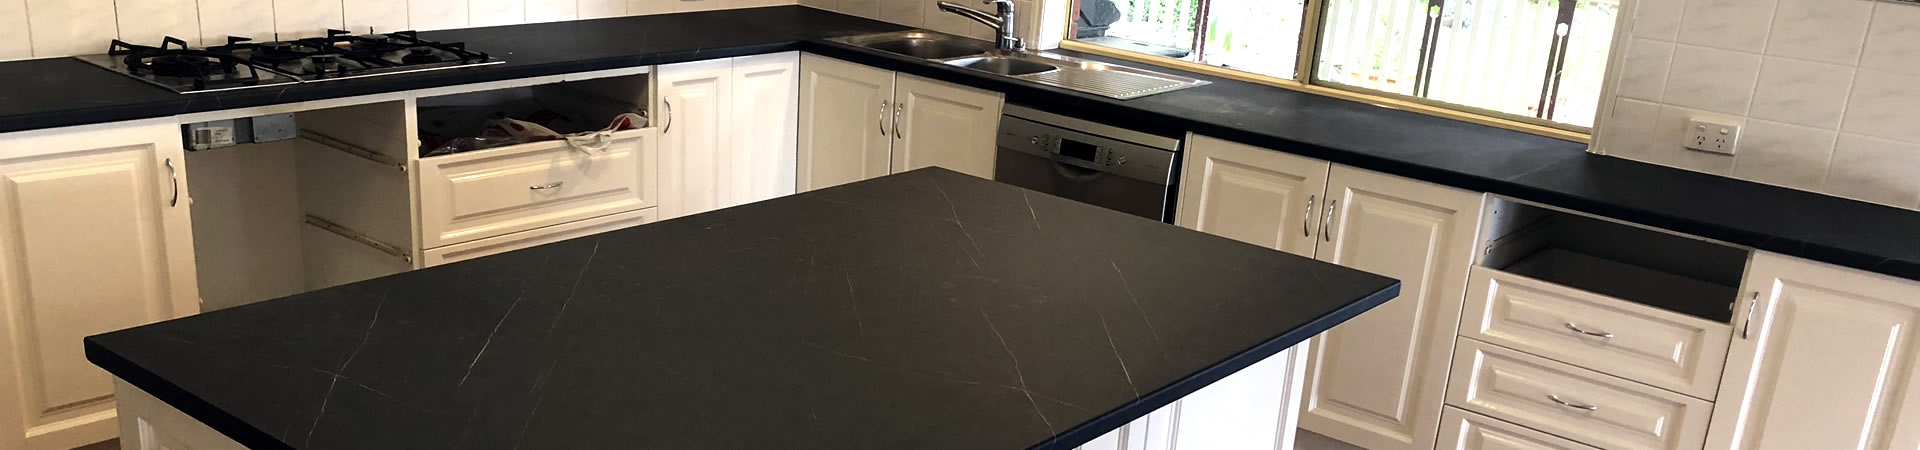 Laminate Kitchen Benchtop